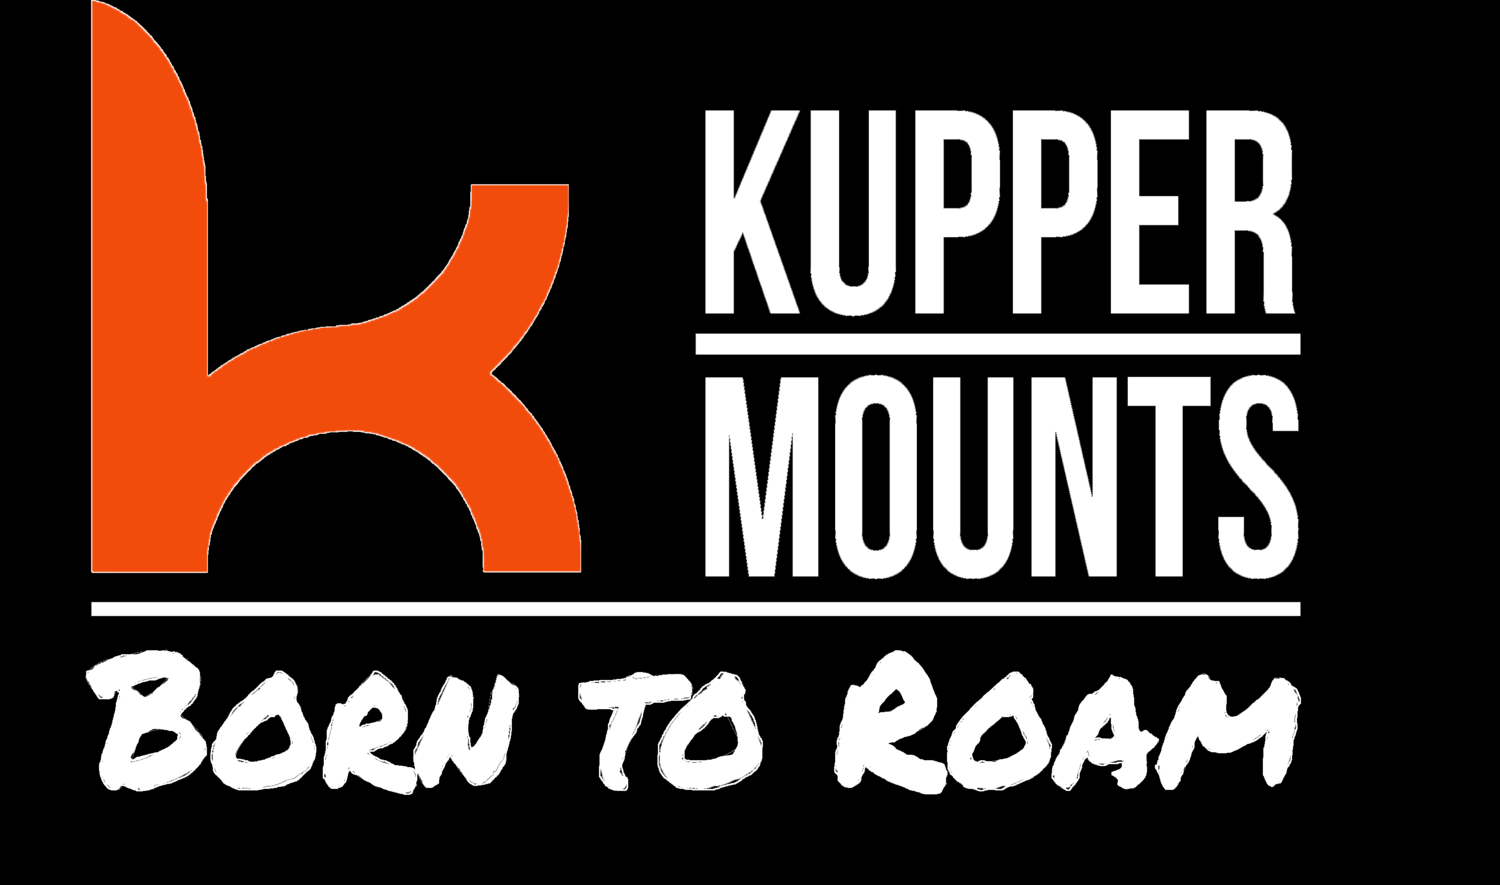 Kupper Mounts - Born To Roam